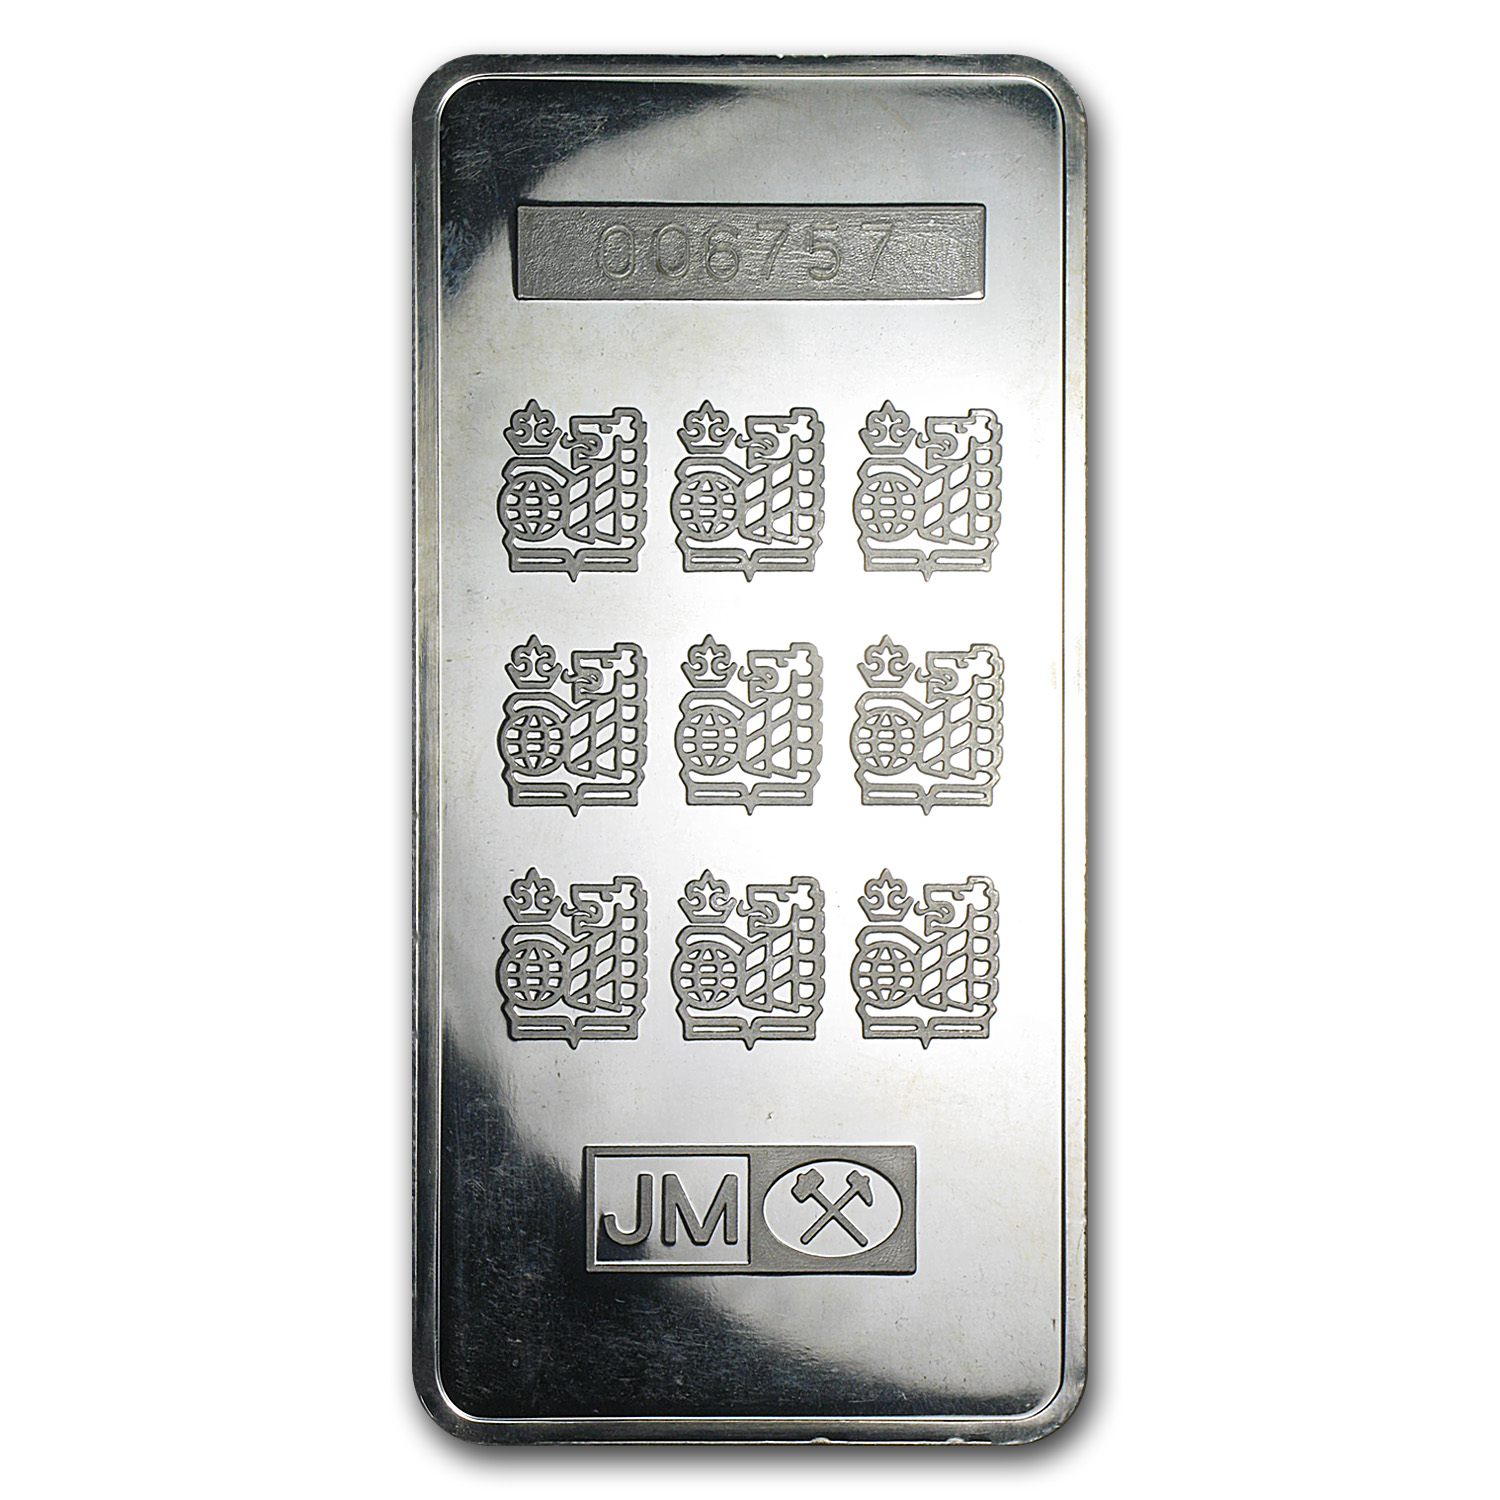 10 oz Silver Bar - Johnson Matthey (Royal Bank of Canada)